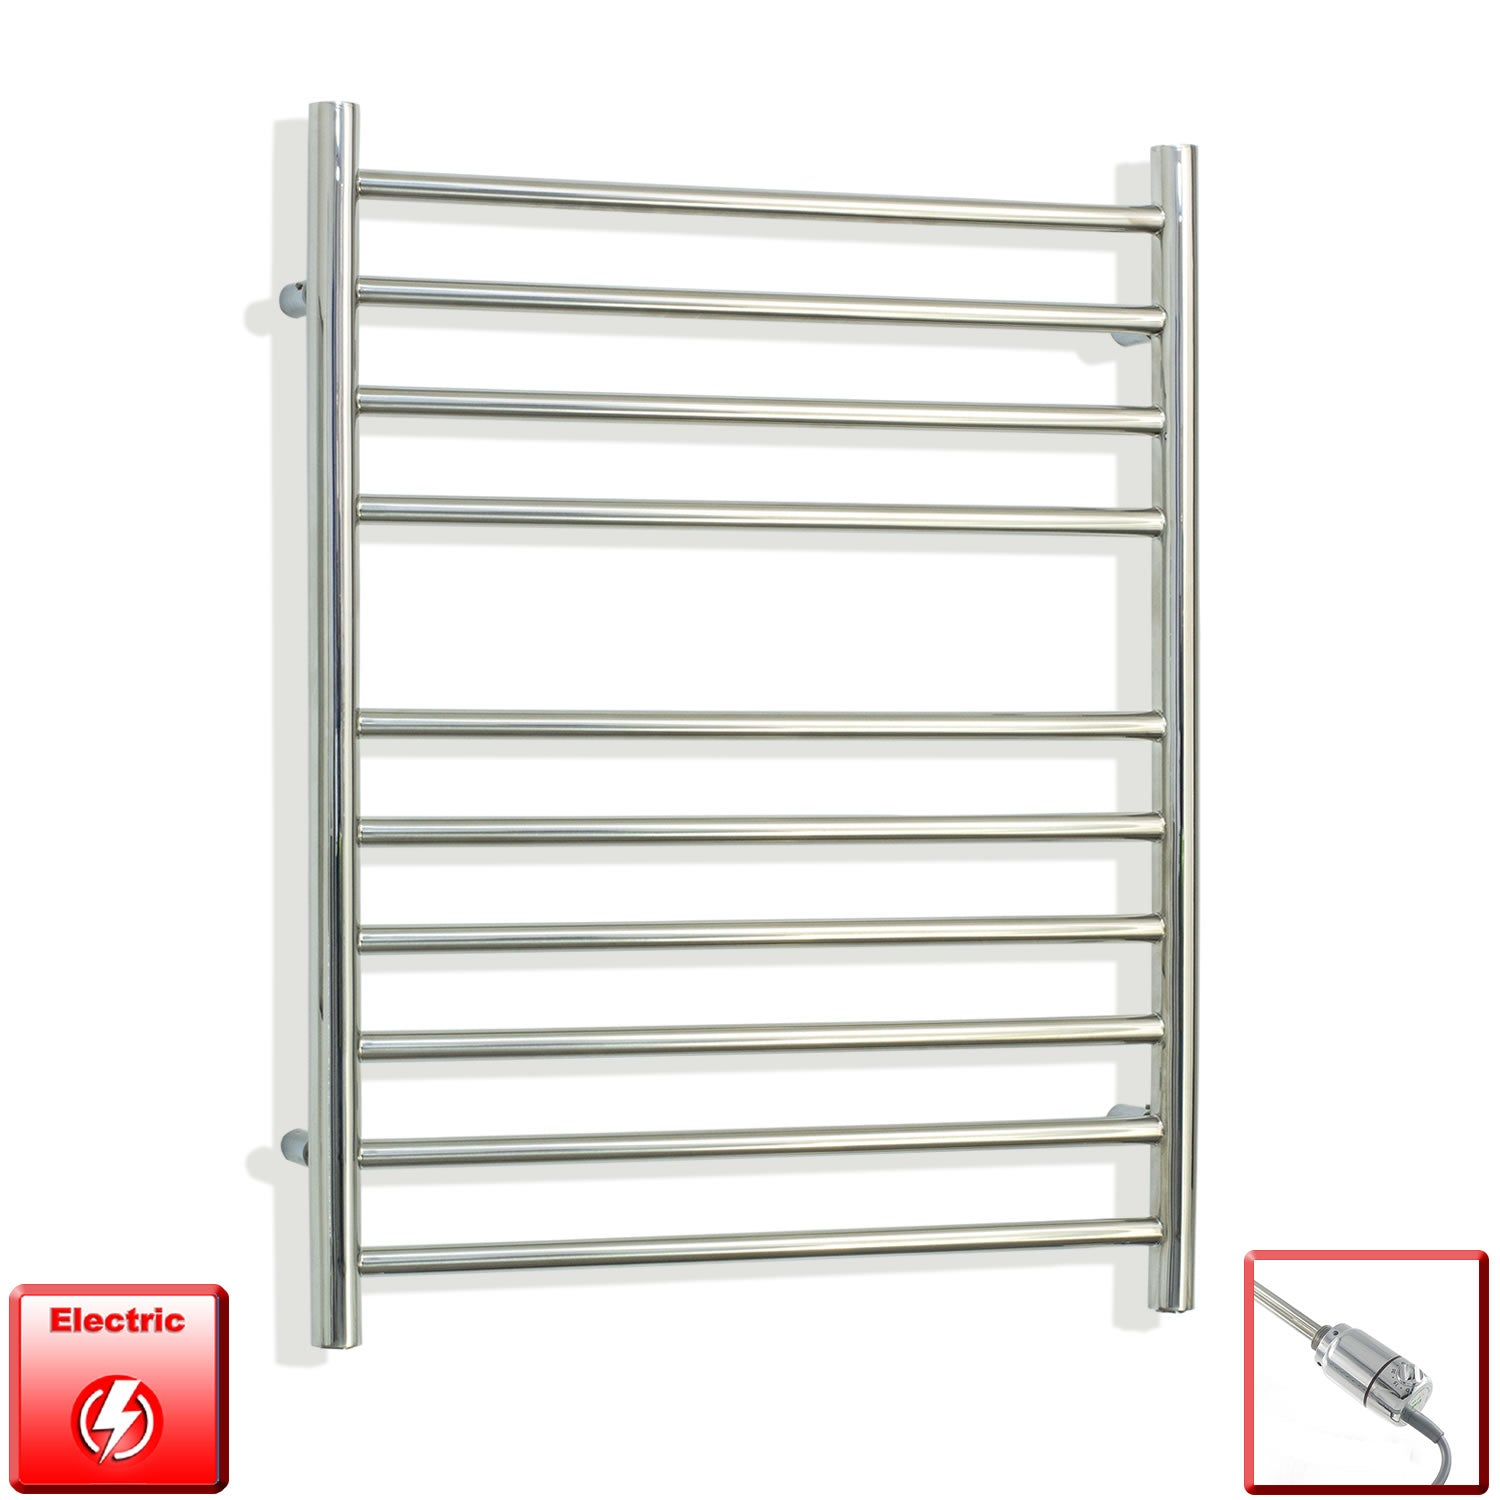 750 mm High 500 mm Wide Pre-Filled Electric Stainless Steel Heated Towel Rail Radiator with gt thermostatic element